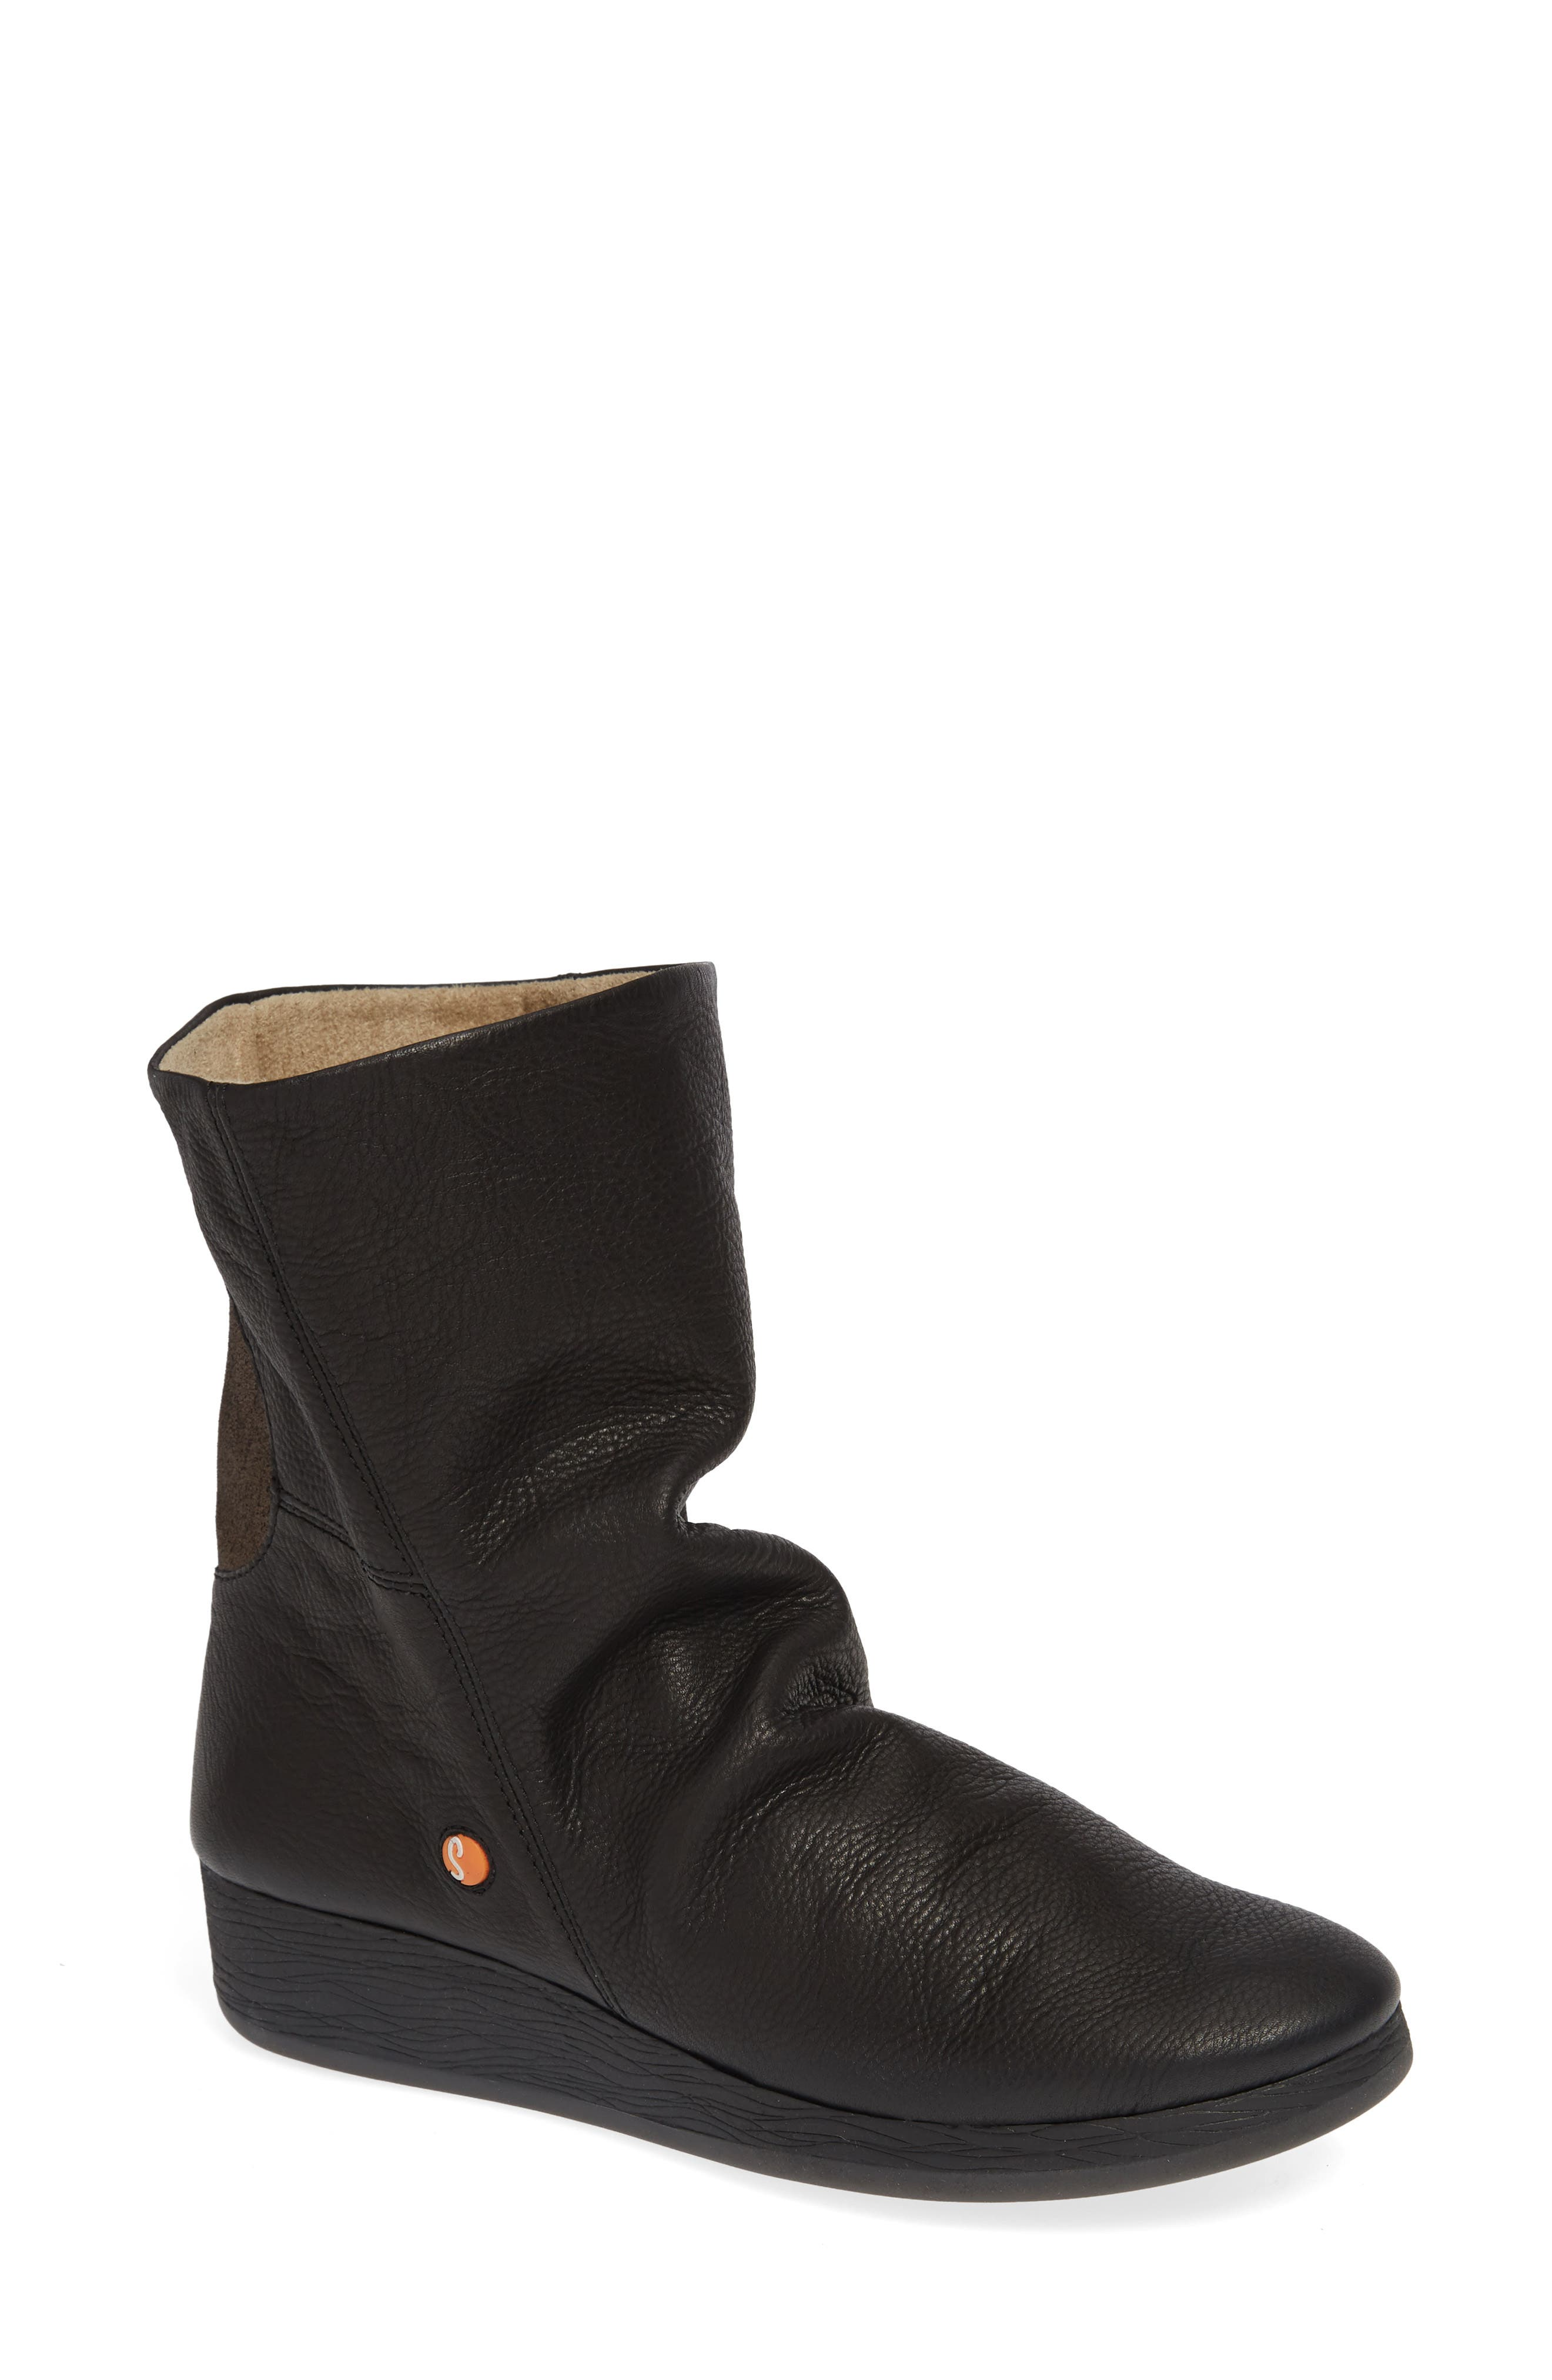 Softinos By Fly London Azi Bootie - Black